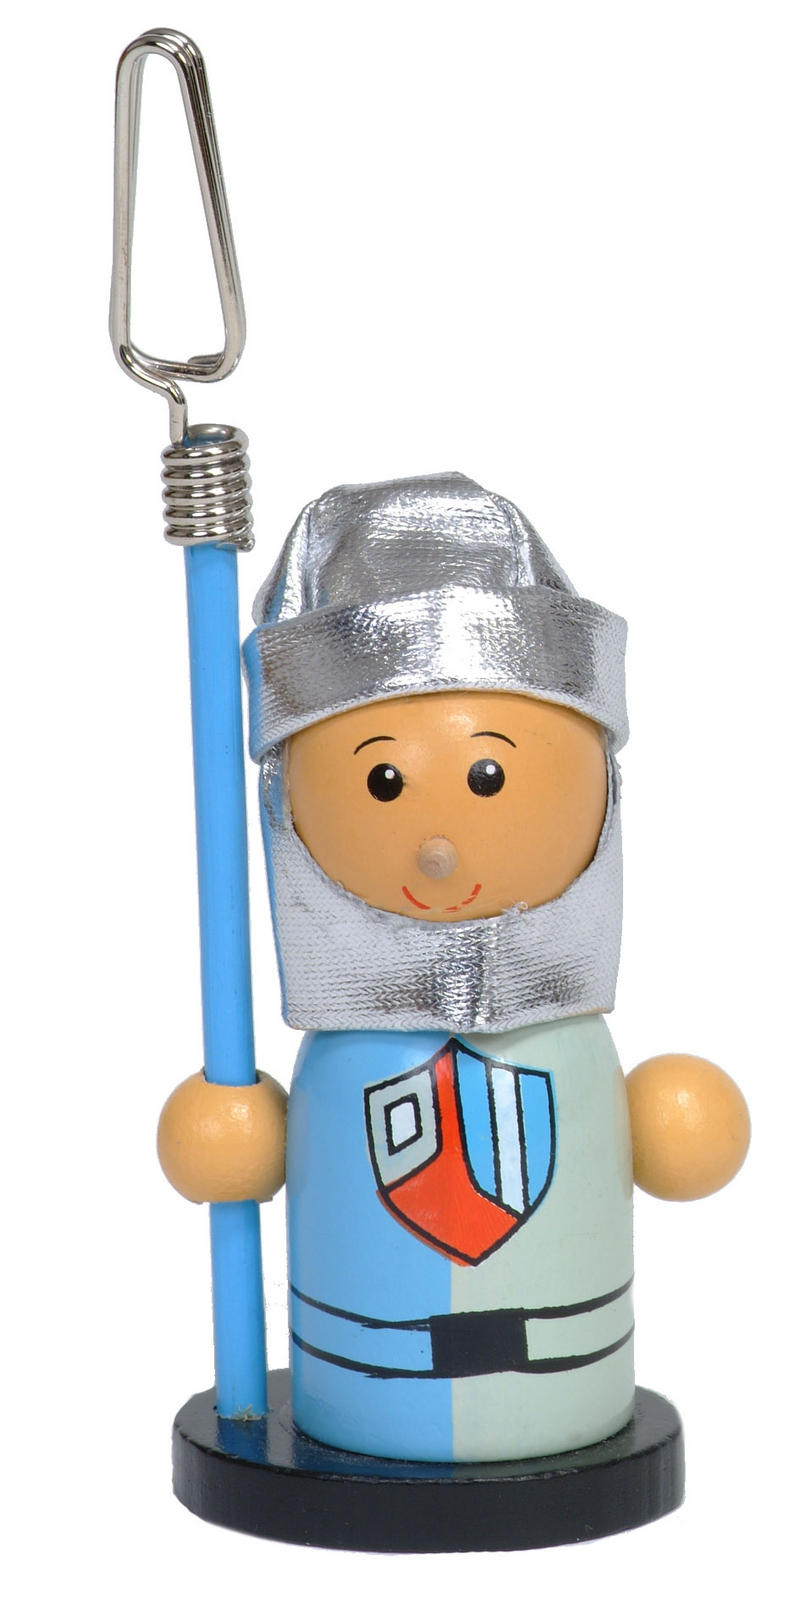 Royal Knight Photo Memo Picture Puppet Holder by Fiesta Crafts